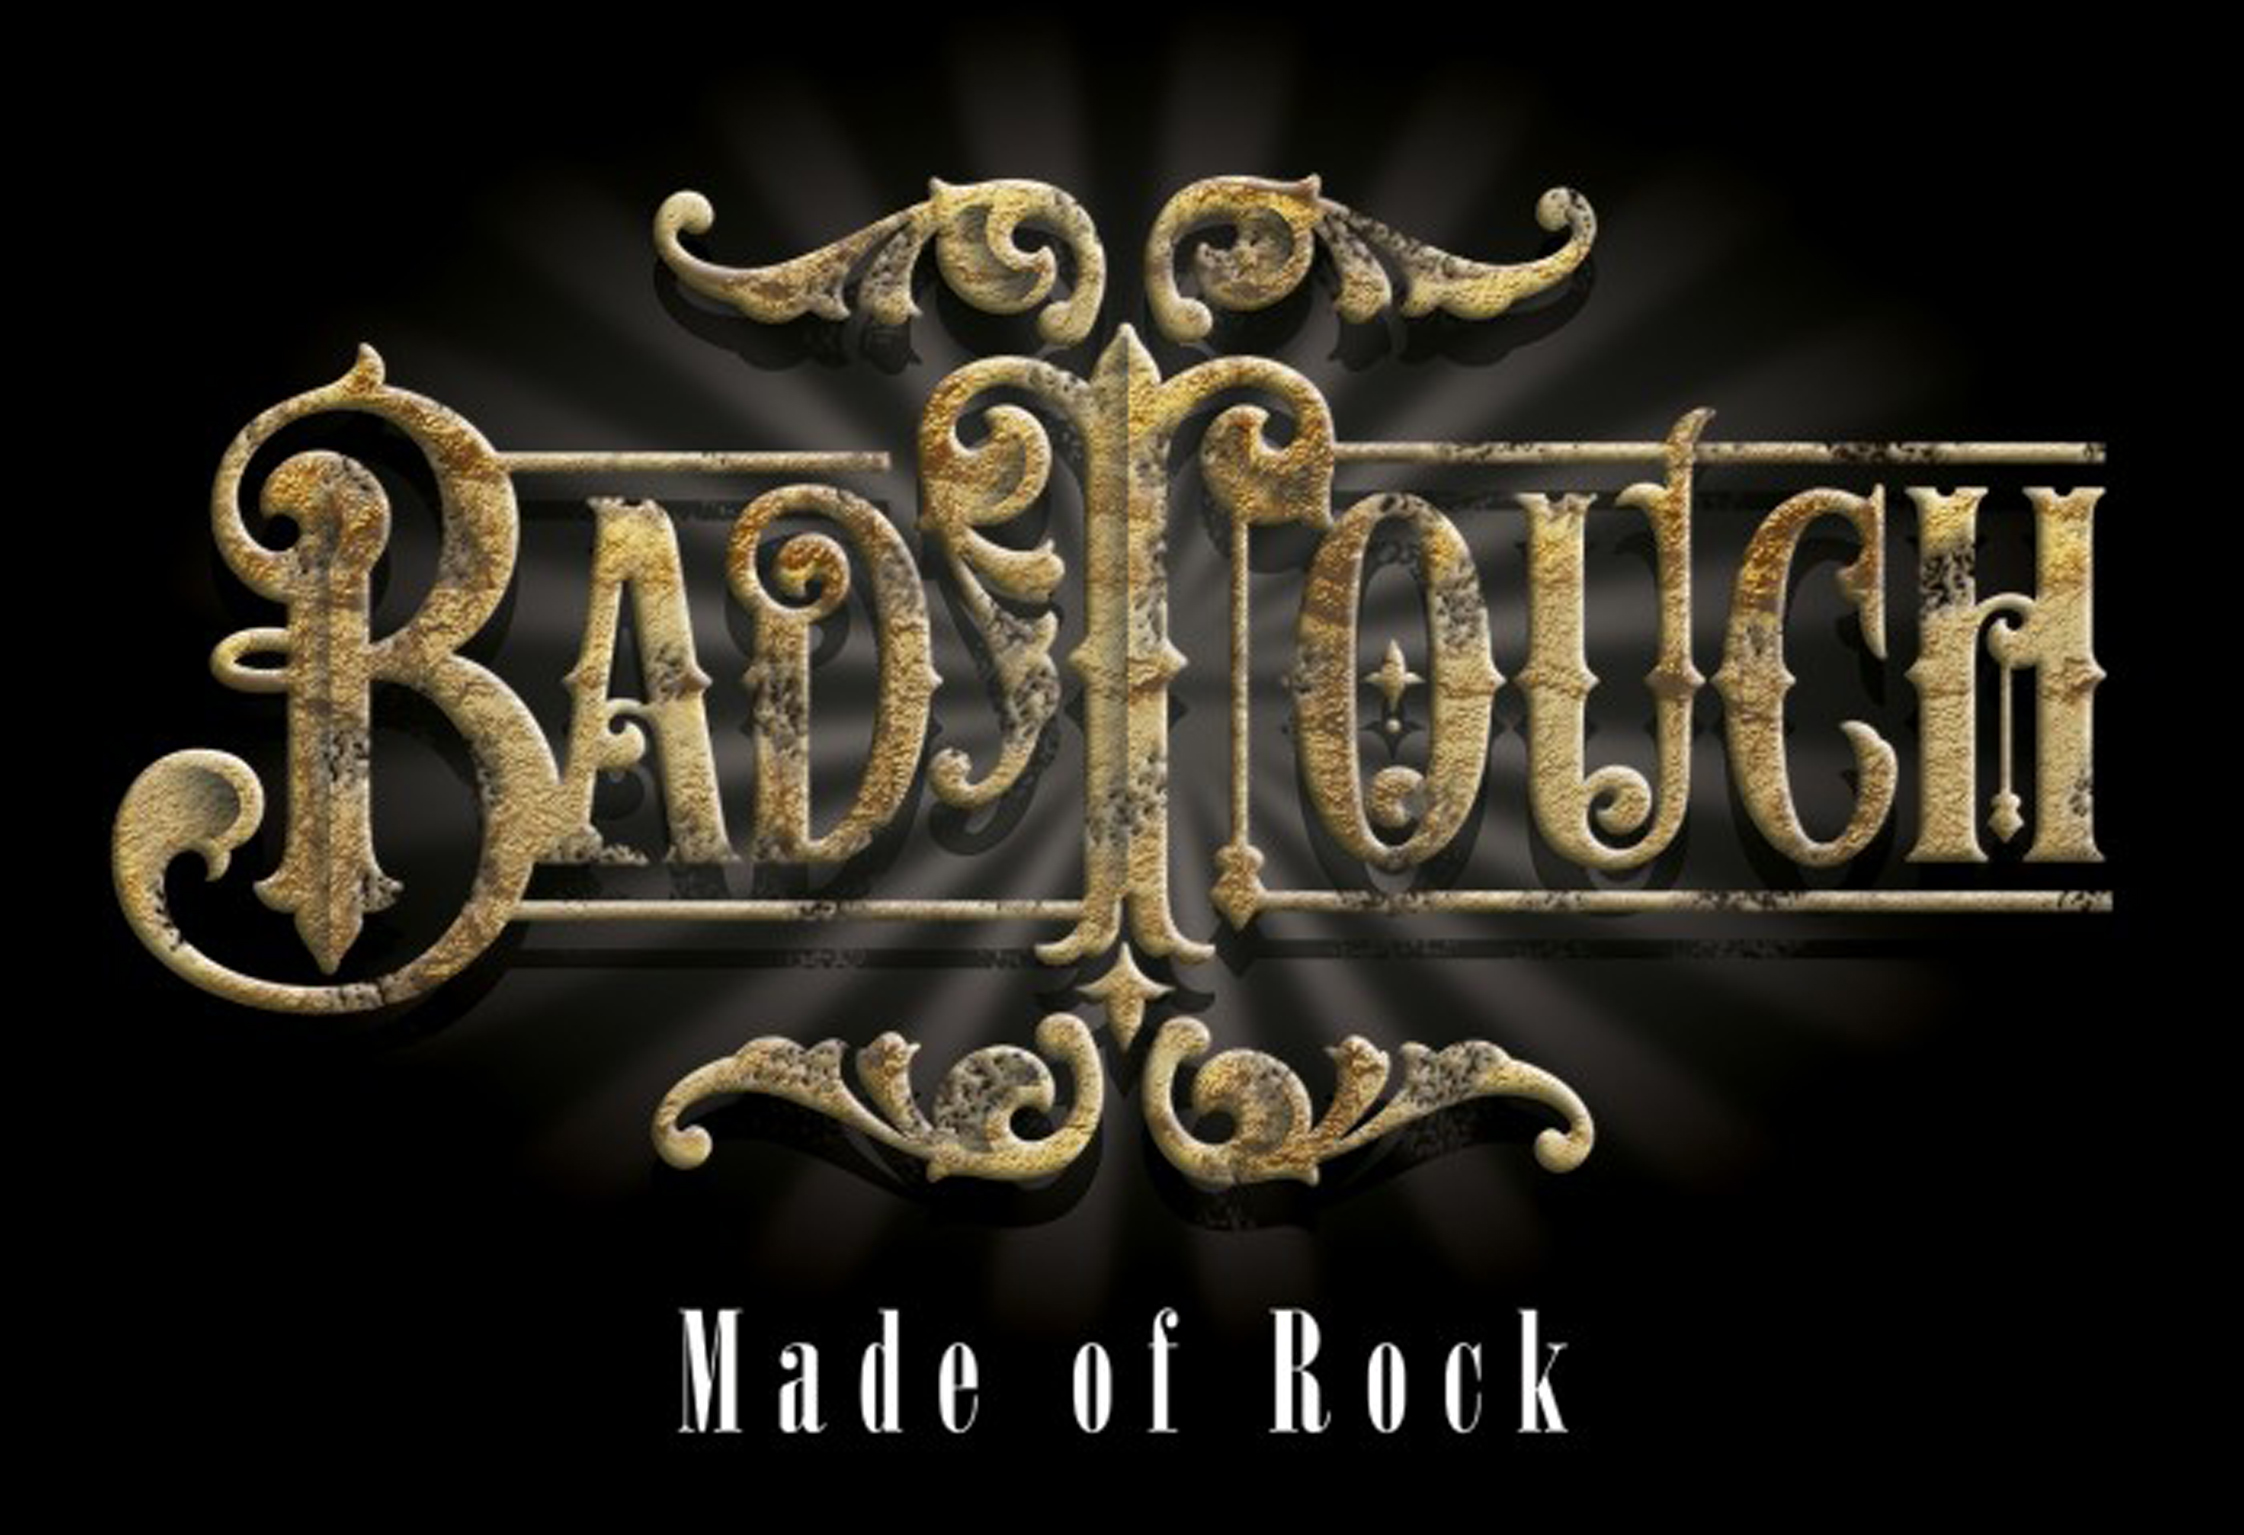 Bad Touch band logo